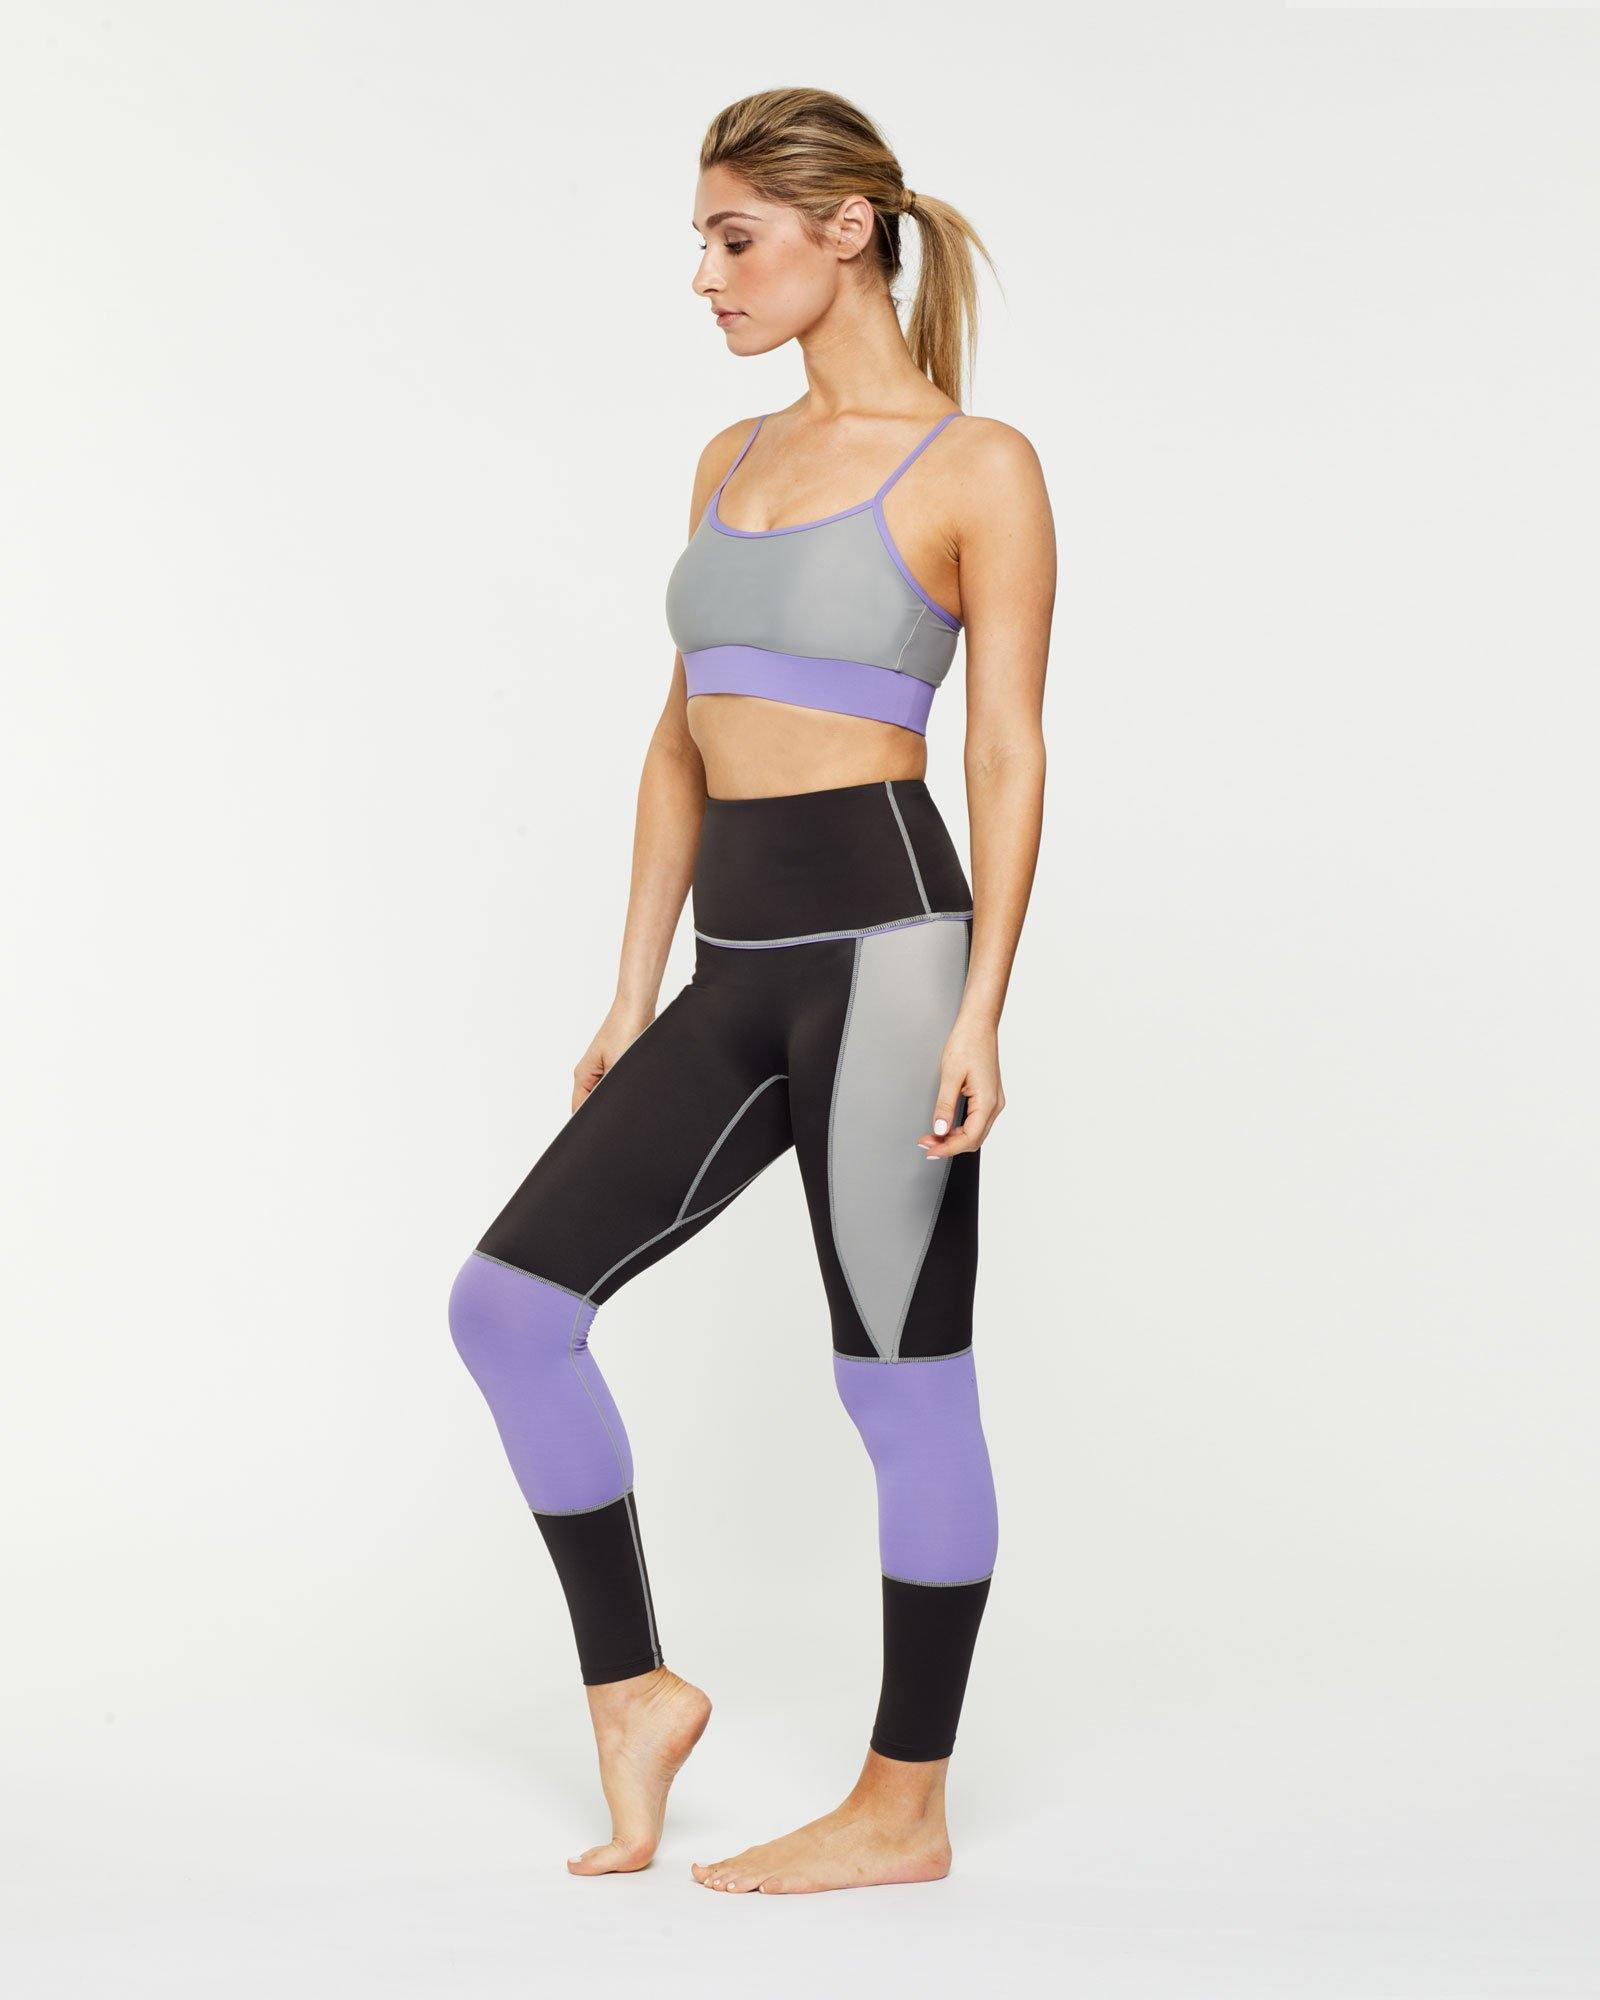 Steely Infraspinatus Bra TOP light grey WITH CONTRAST deep mauve UNDER BUST BAND ADJUSTABLE V STRAPS, WORN WITH GRACILIS 7/8 LENGTH LEGGING, SIDE VIEW